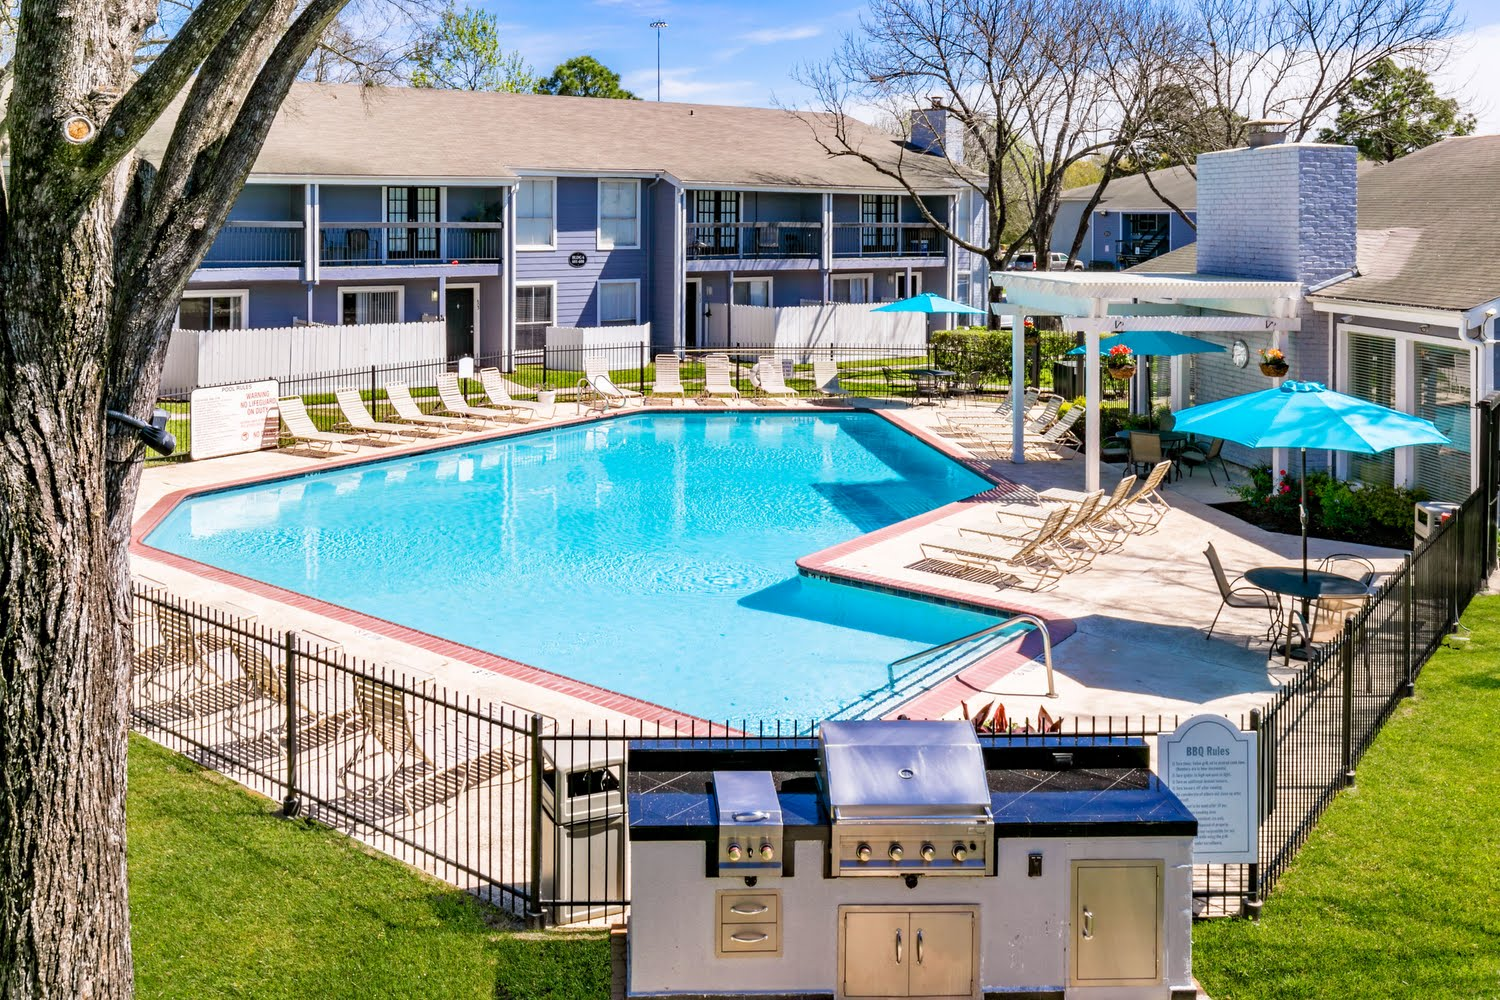 Lakewood Apartments In Tomball Texas